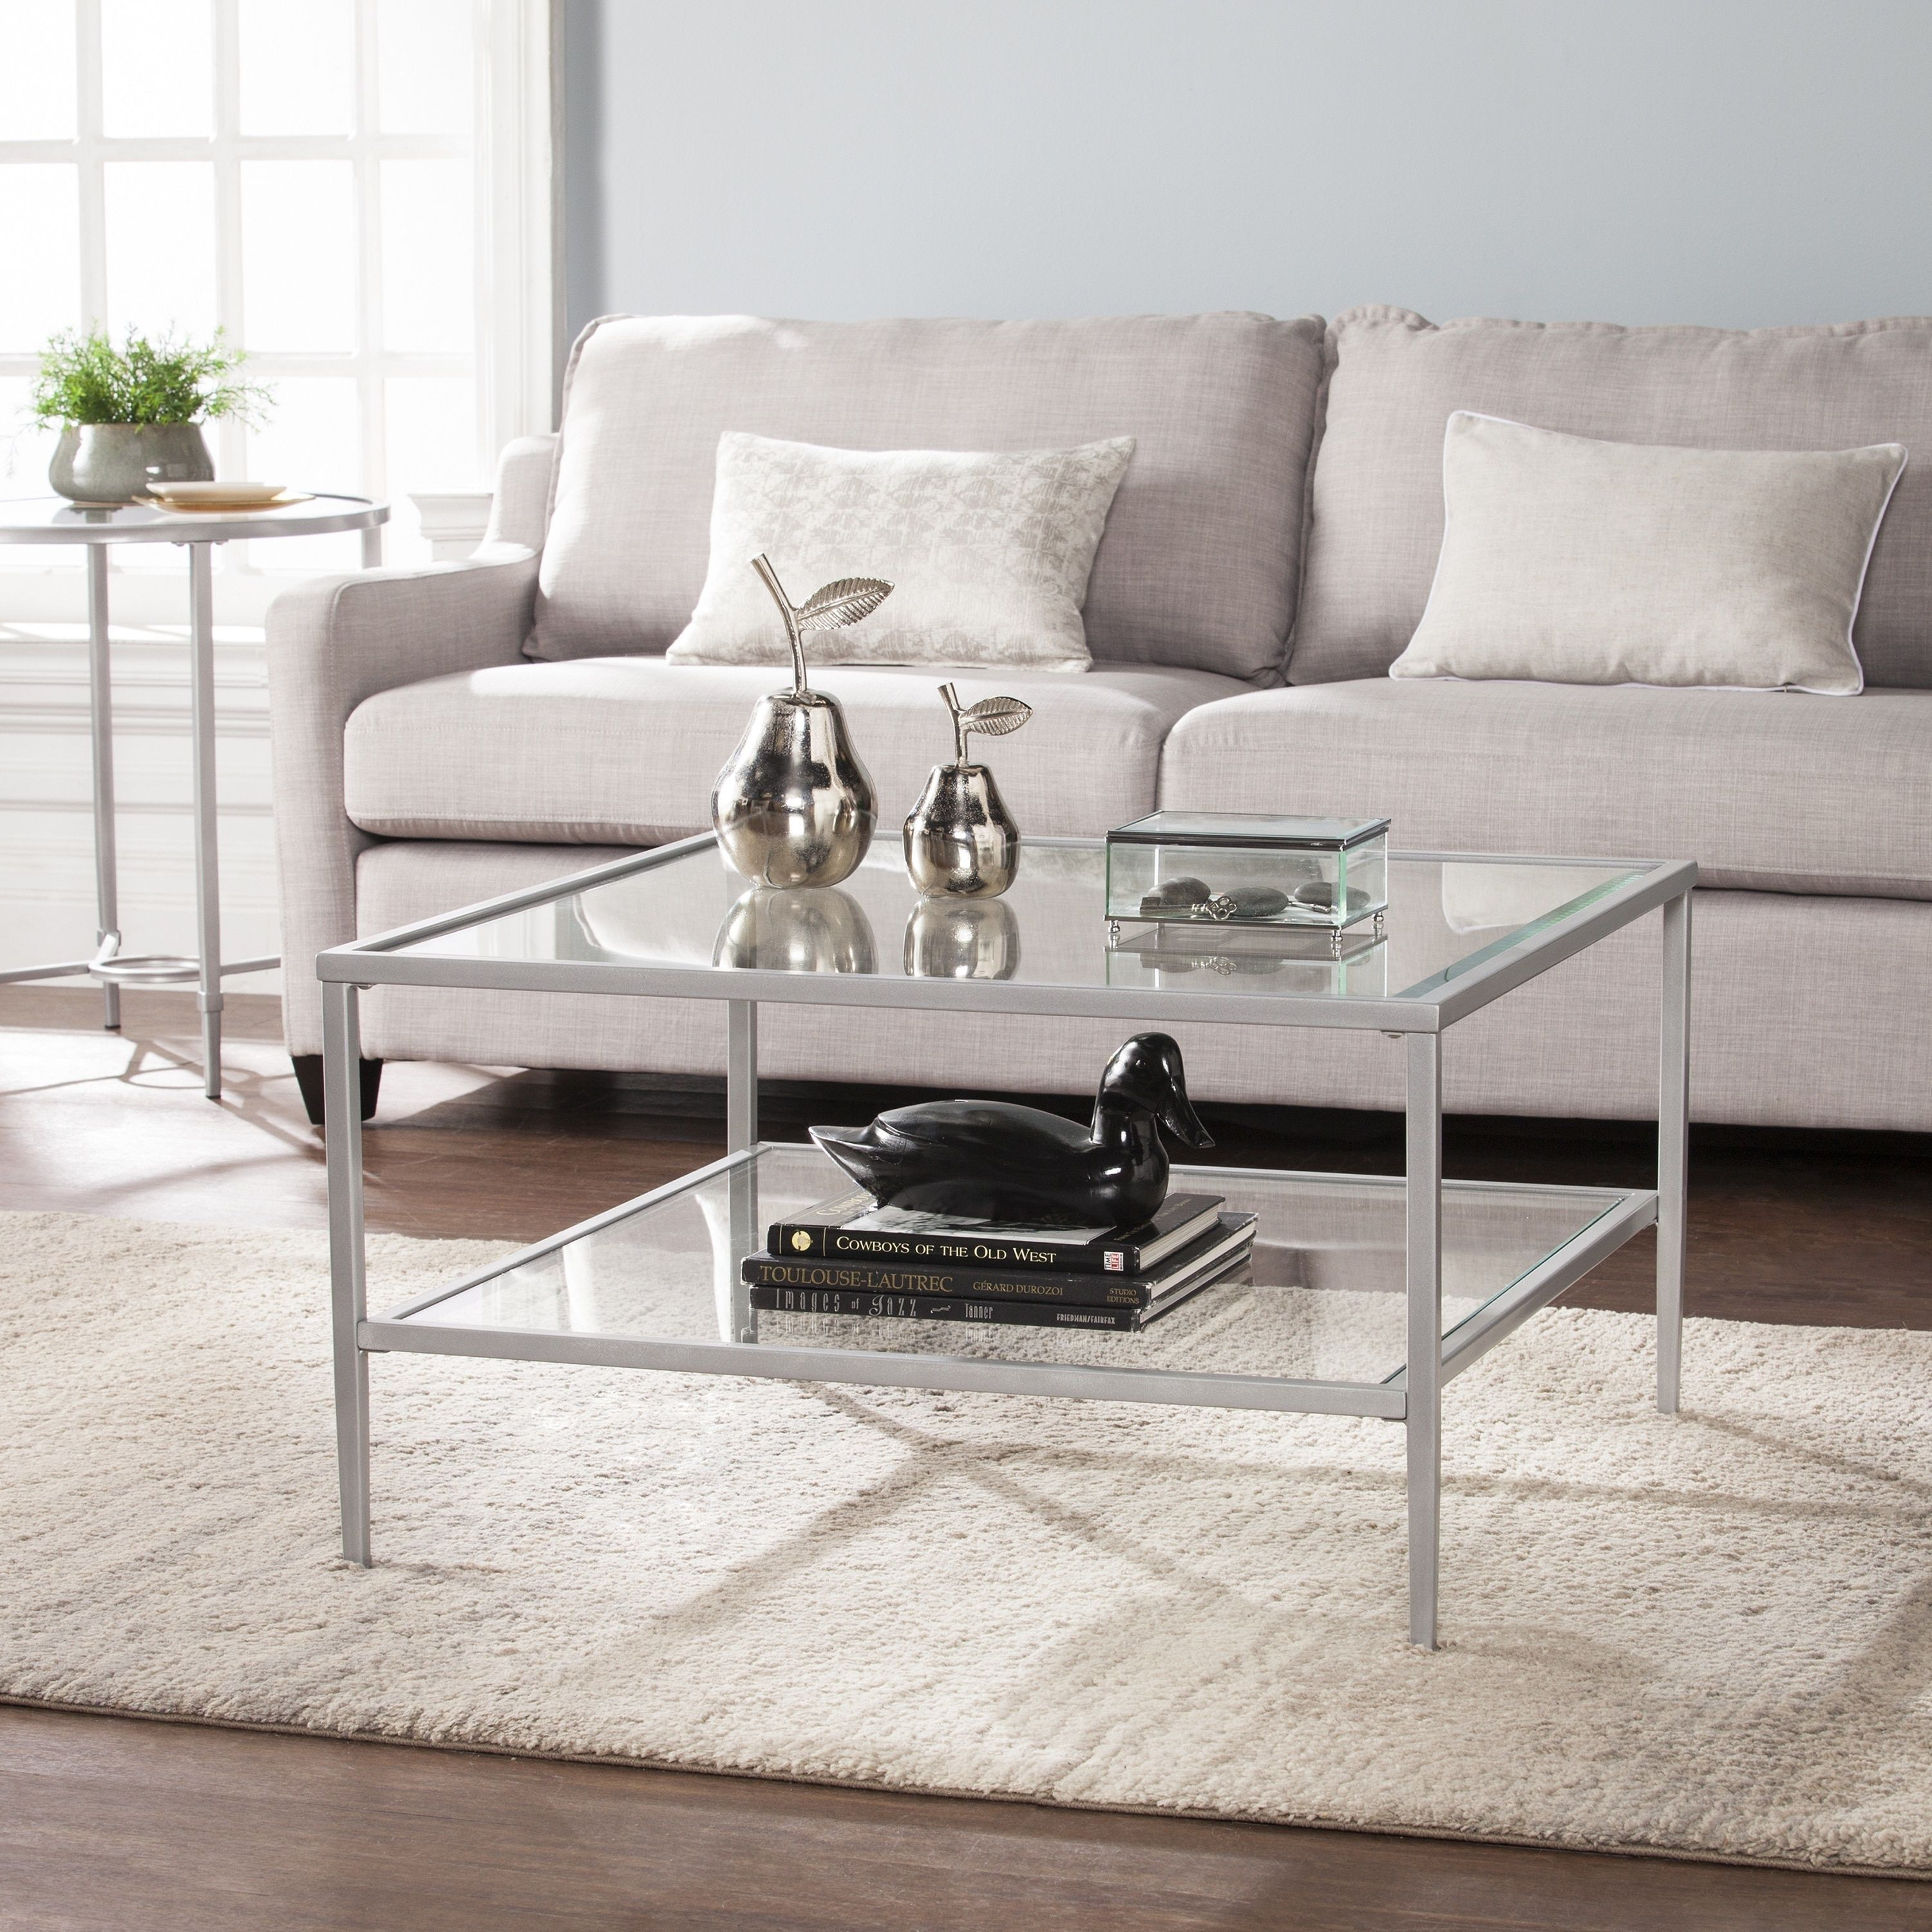 Our Best Living Room Furniture Deals Coffee Table Table Decor Living Room Furniture [ 3000 x 3000 Pixel ]